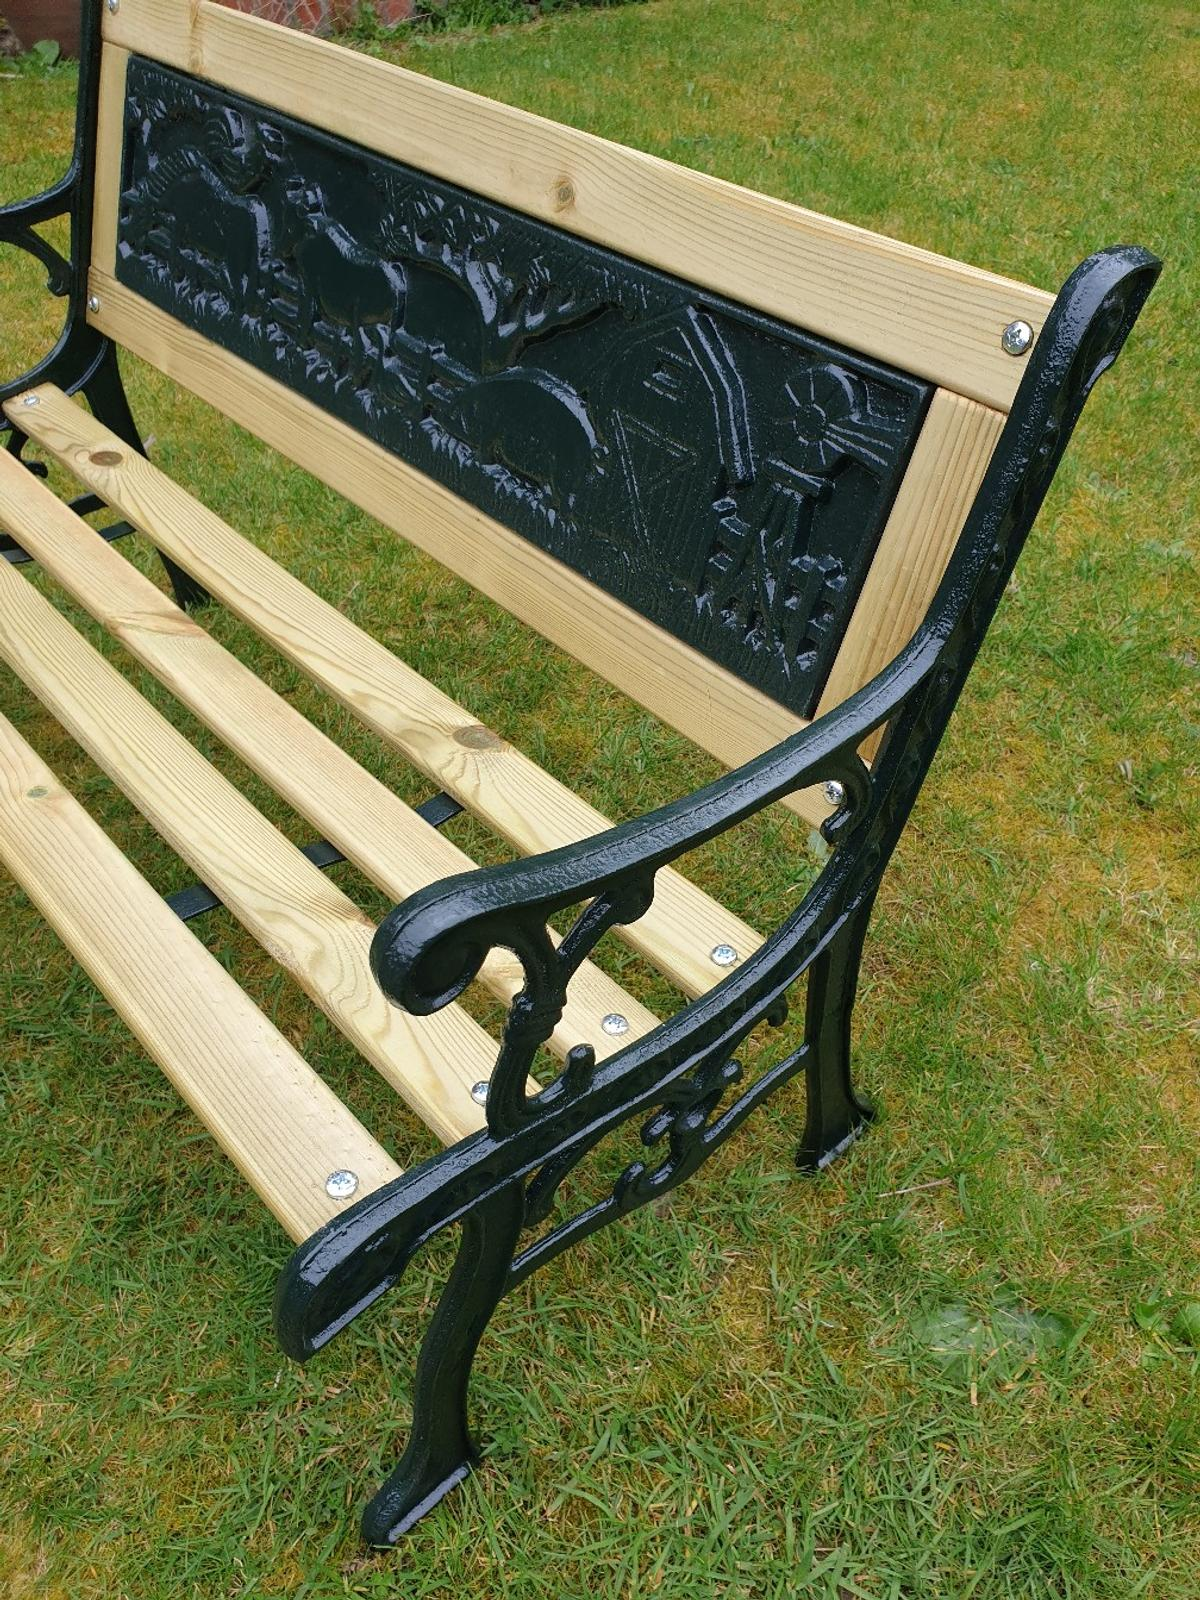 Sensational Childs Vintage Cast Iron Bench In Wf2 Wakefield For 70 00 Caraccident5 Cool Chair Designs And Ideas Caraccident5Info